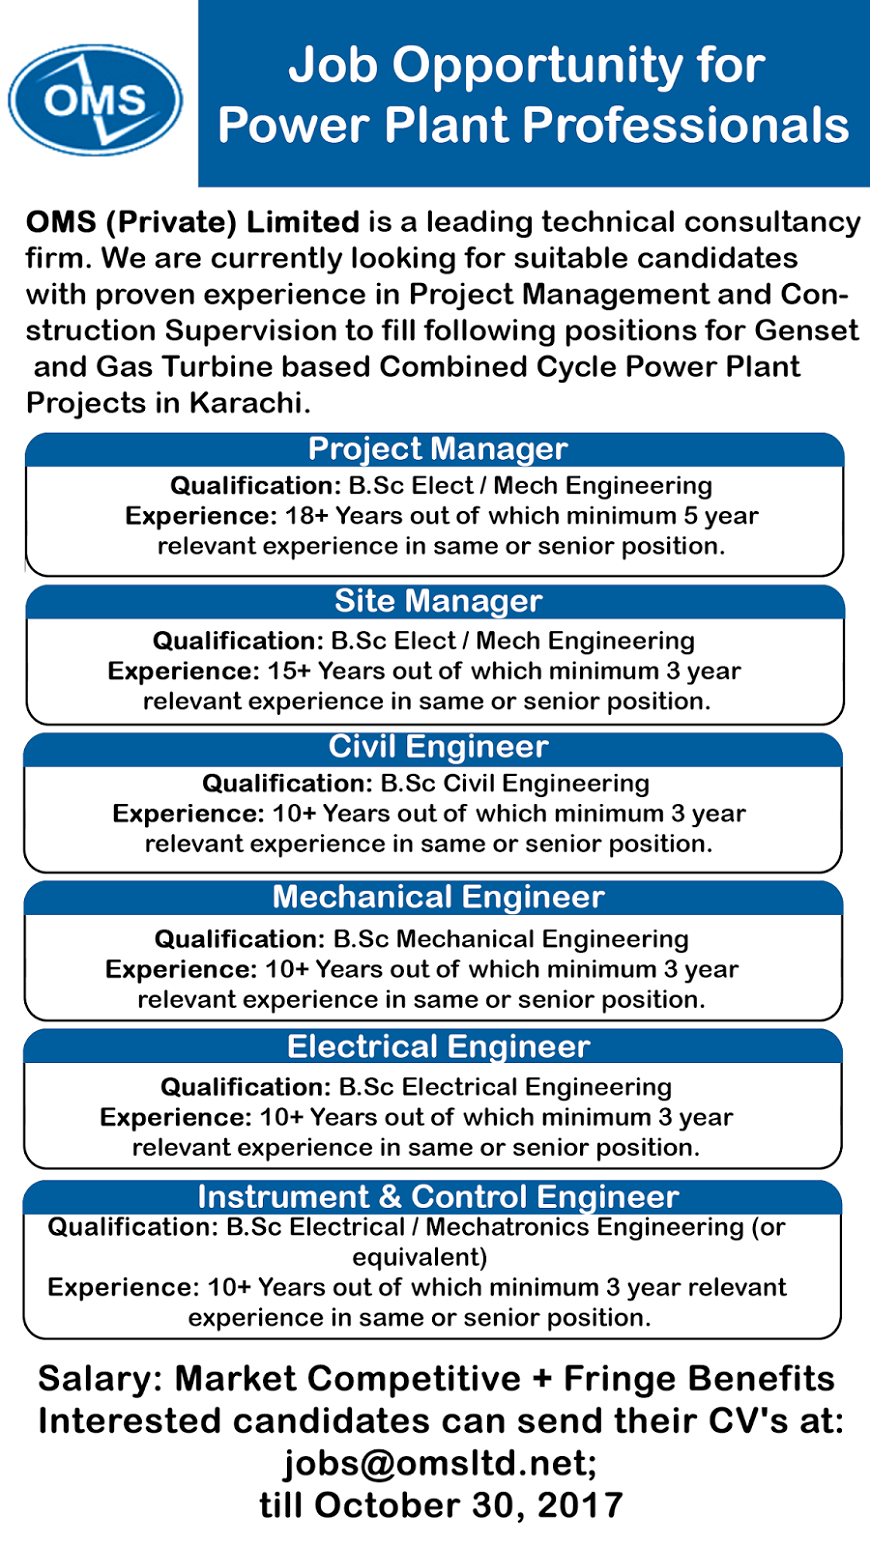 Oms Jobs For Power Plant Professionals Jobs In Pakistan